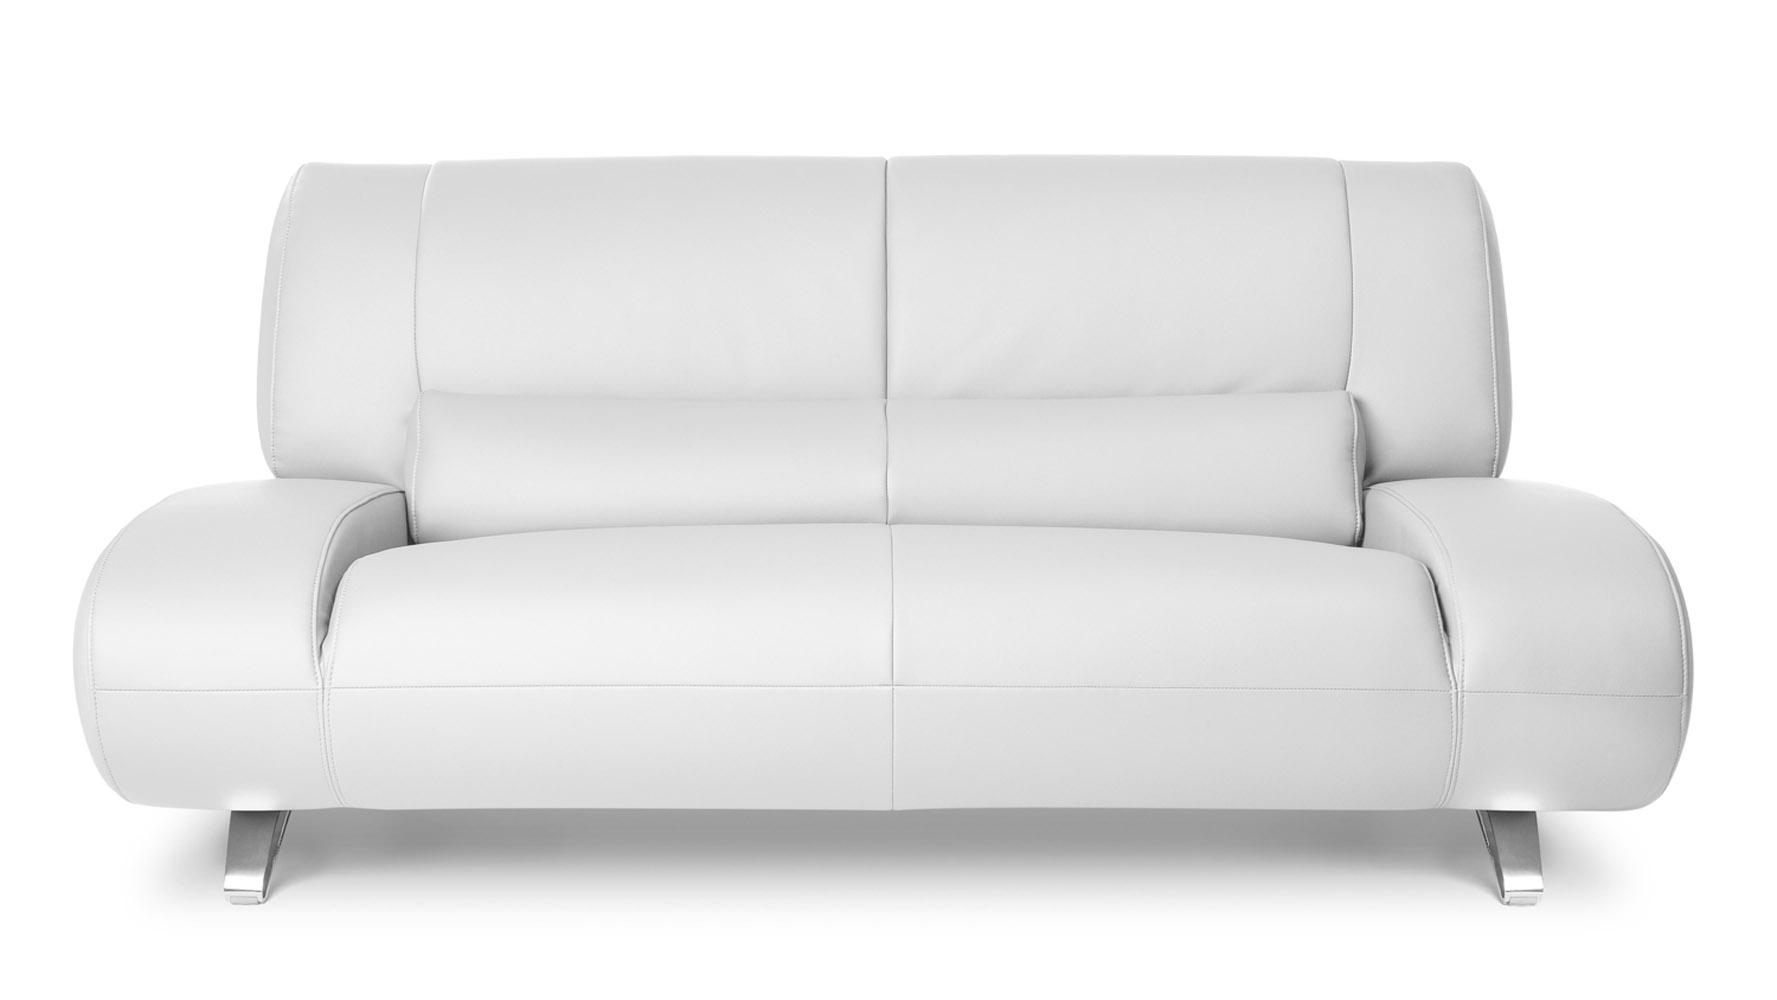 Aspen 2 Seater | Zuri Furniture With Aspen Leather Sofas (View 12 of 20)